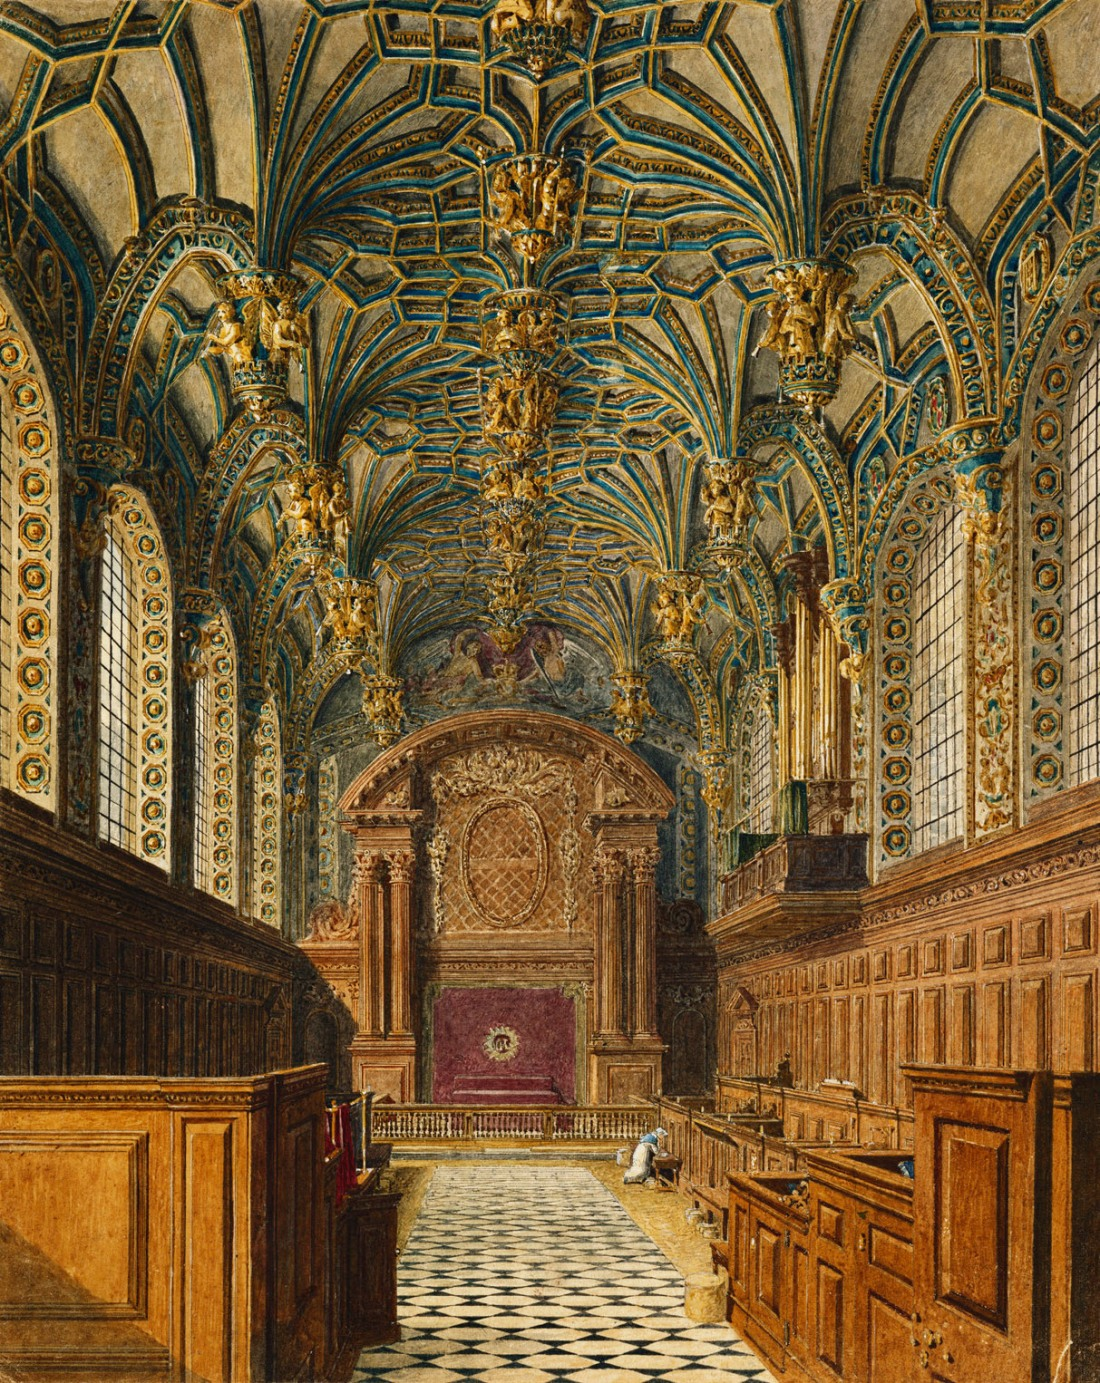 Hampton_Court_Palace,_Chapel,_by_Charles_Wild,_1819_-_royal_coll_922125_313698_ORI_2